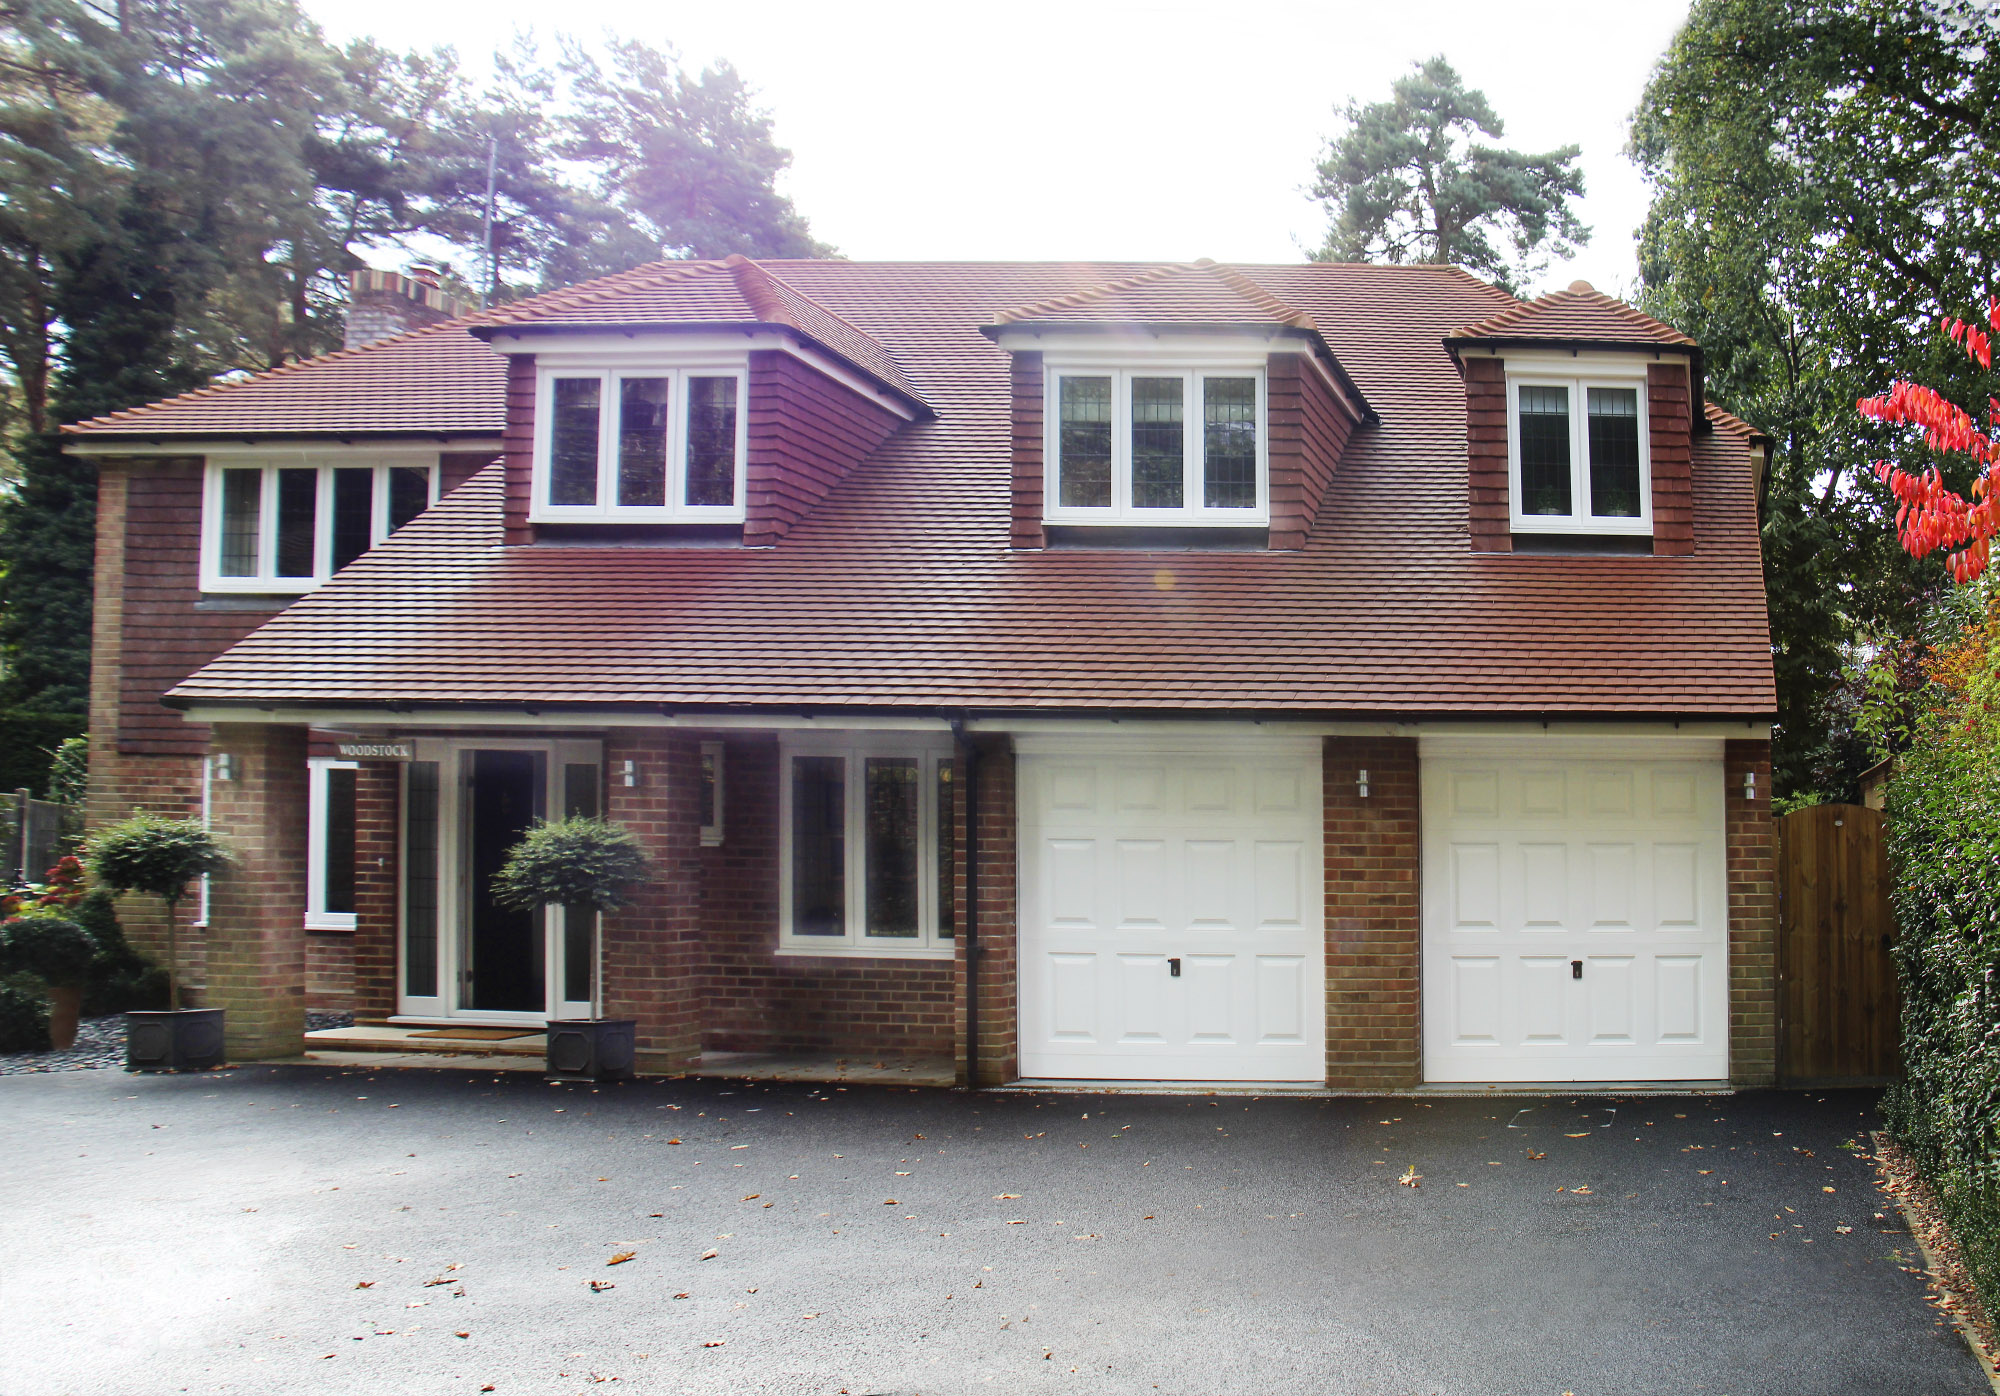 - marchini-architecture.com, - Woking, - loft extension, - new dormers